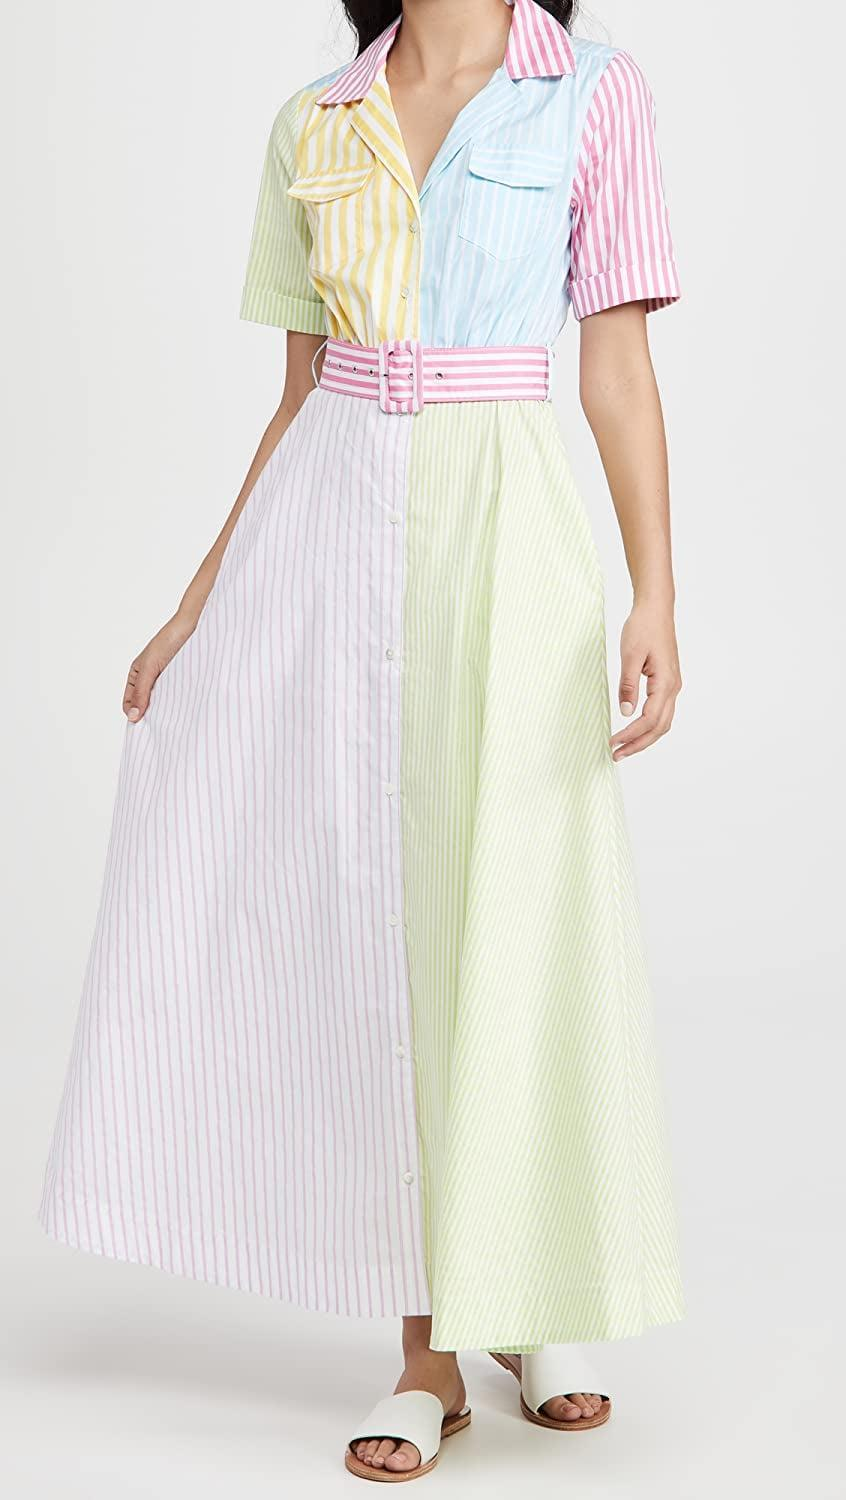 <p>This <span>Staud Millie Midi Dress</span> ($375) instantly makes us smile. We promise, the quality and special details make it worth the investment.</p>